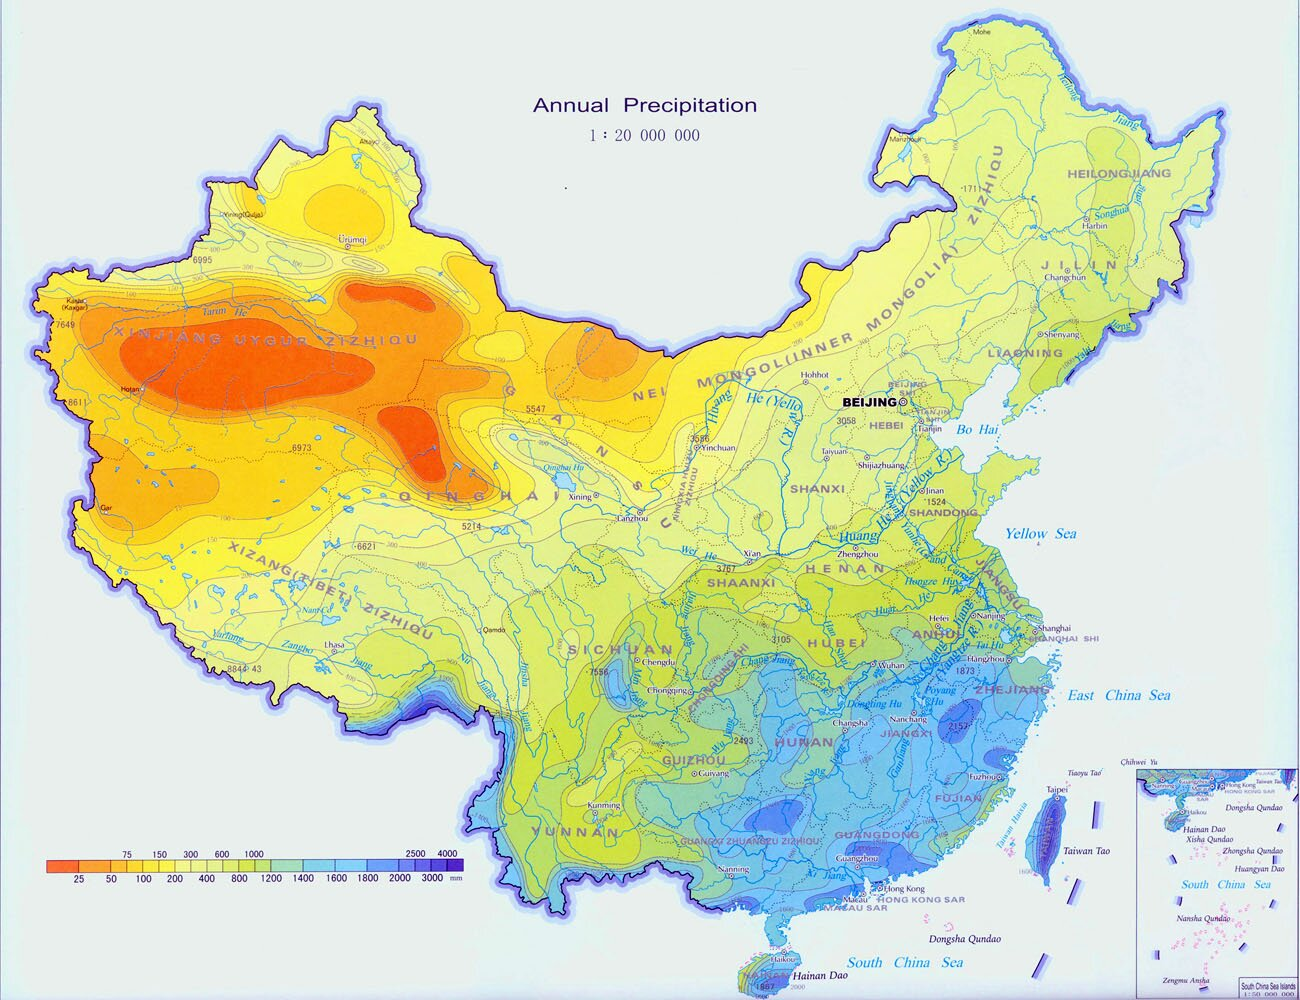 https://i1.wp.com/www.chinamaps.org/images/china-map/maps-of-china/china-map-of-precipitation.jpg